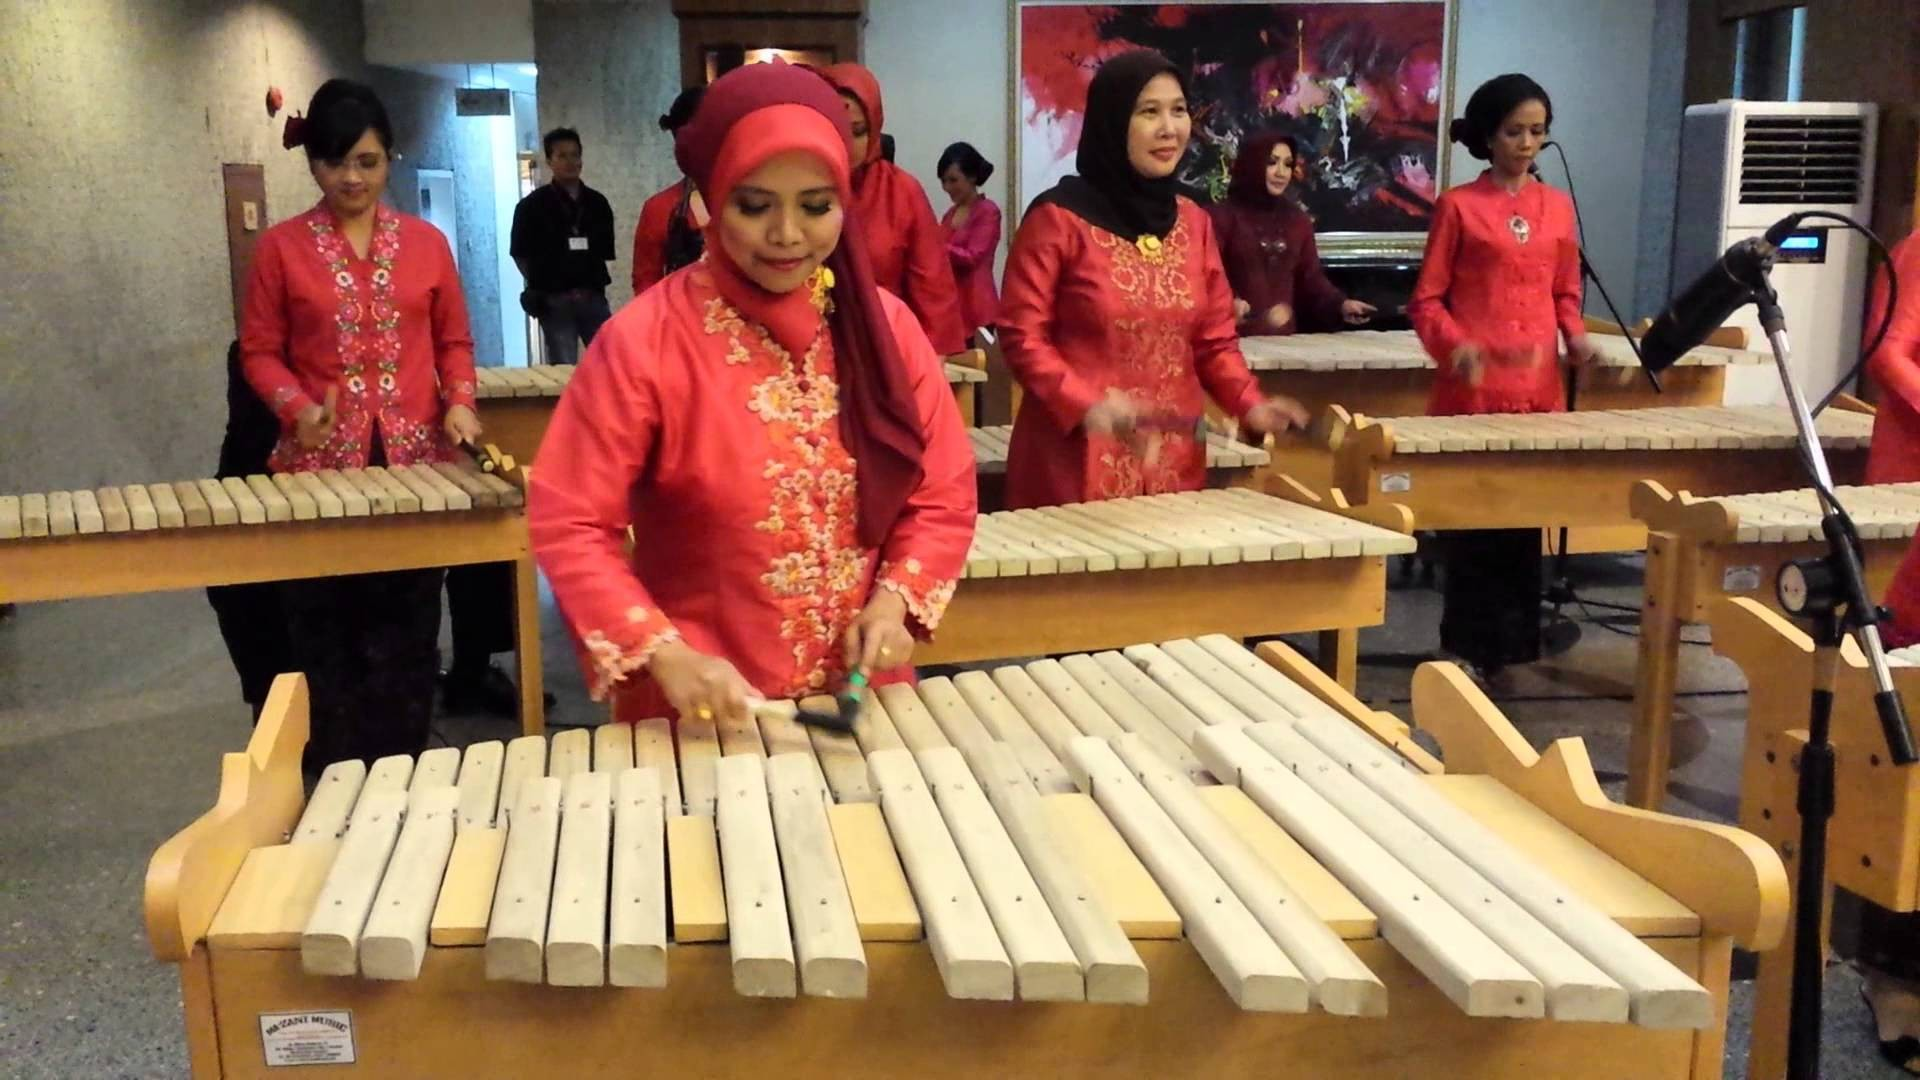 Kolintang instruments are familiar among the Minahasa community